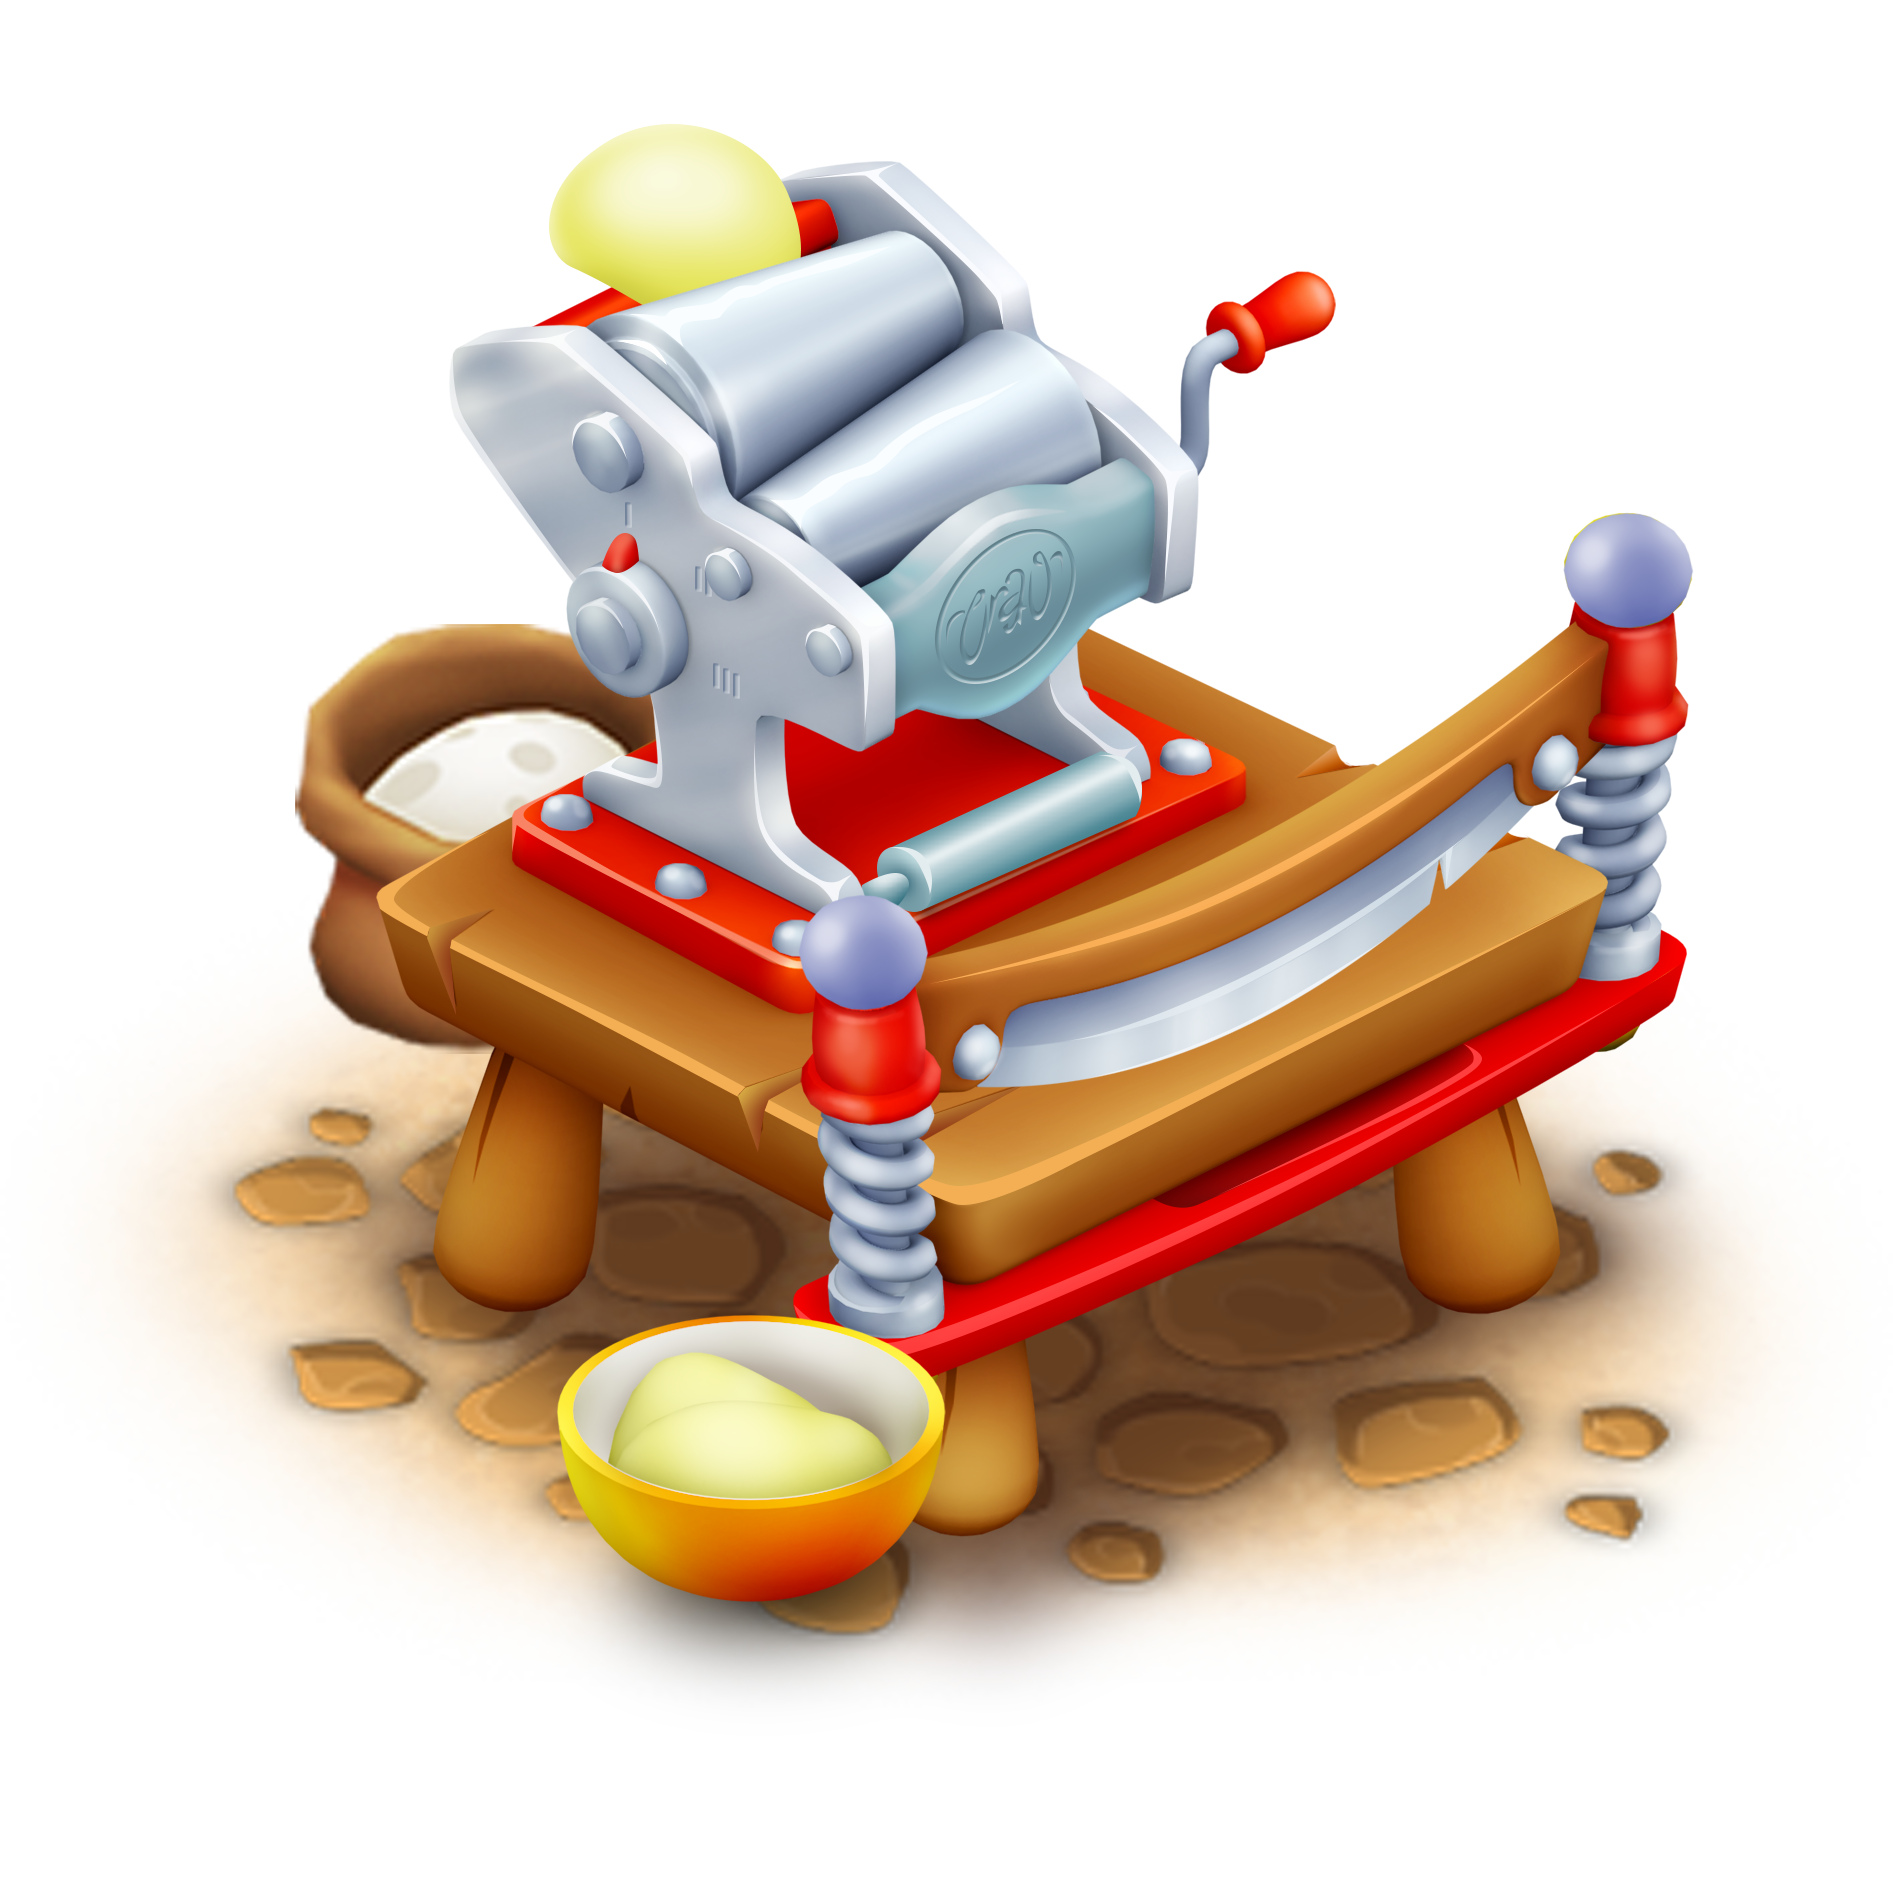 Pasta Making Machine Clip Art